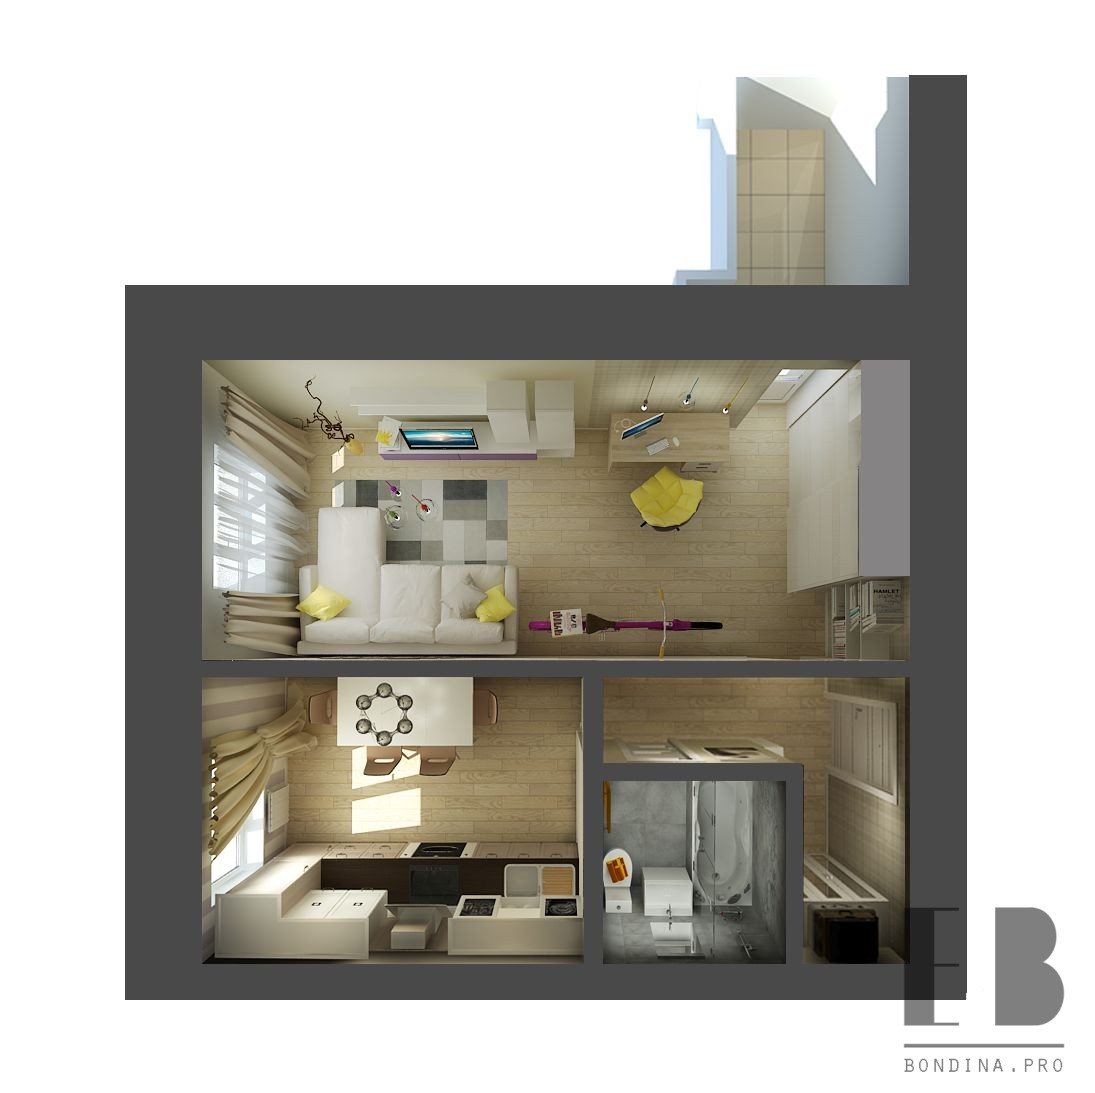 One-room apartment project